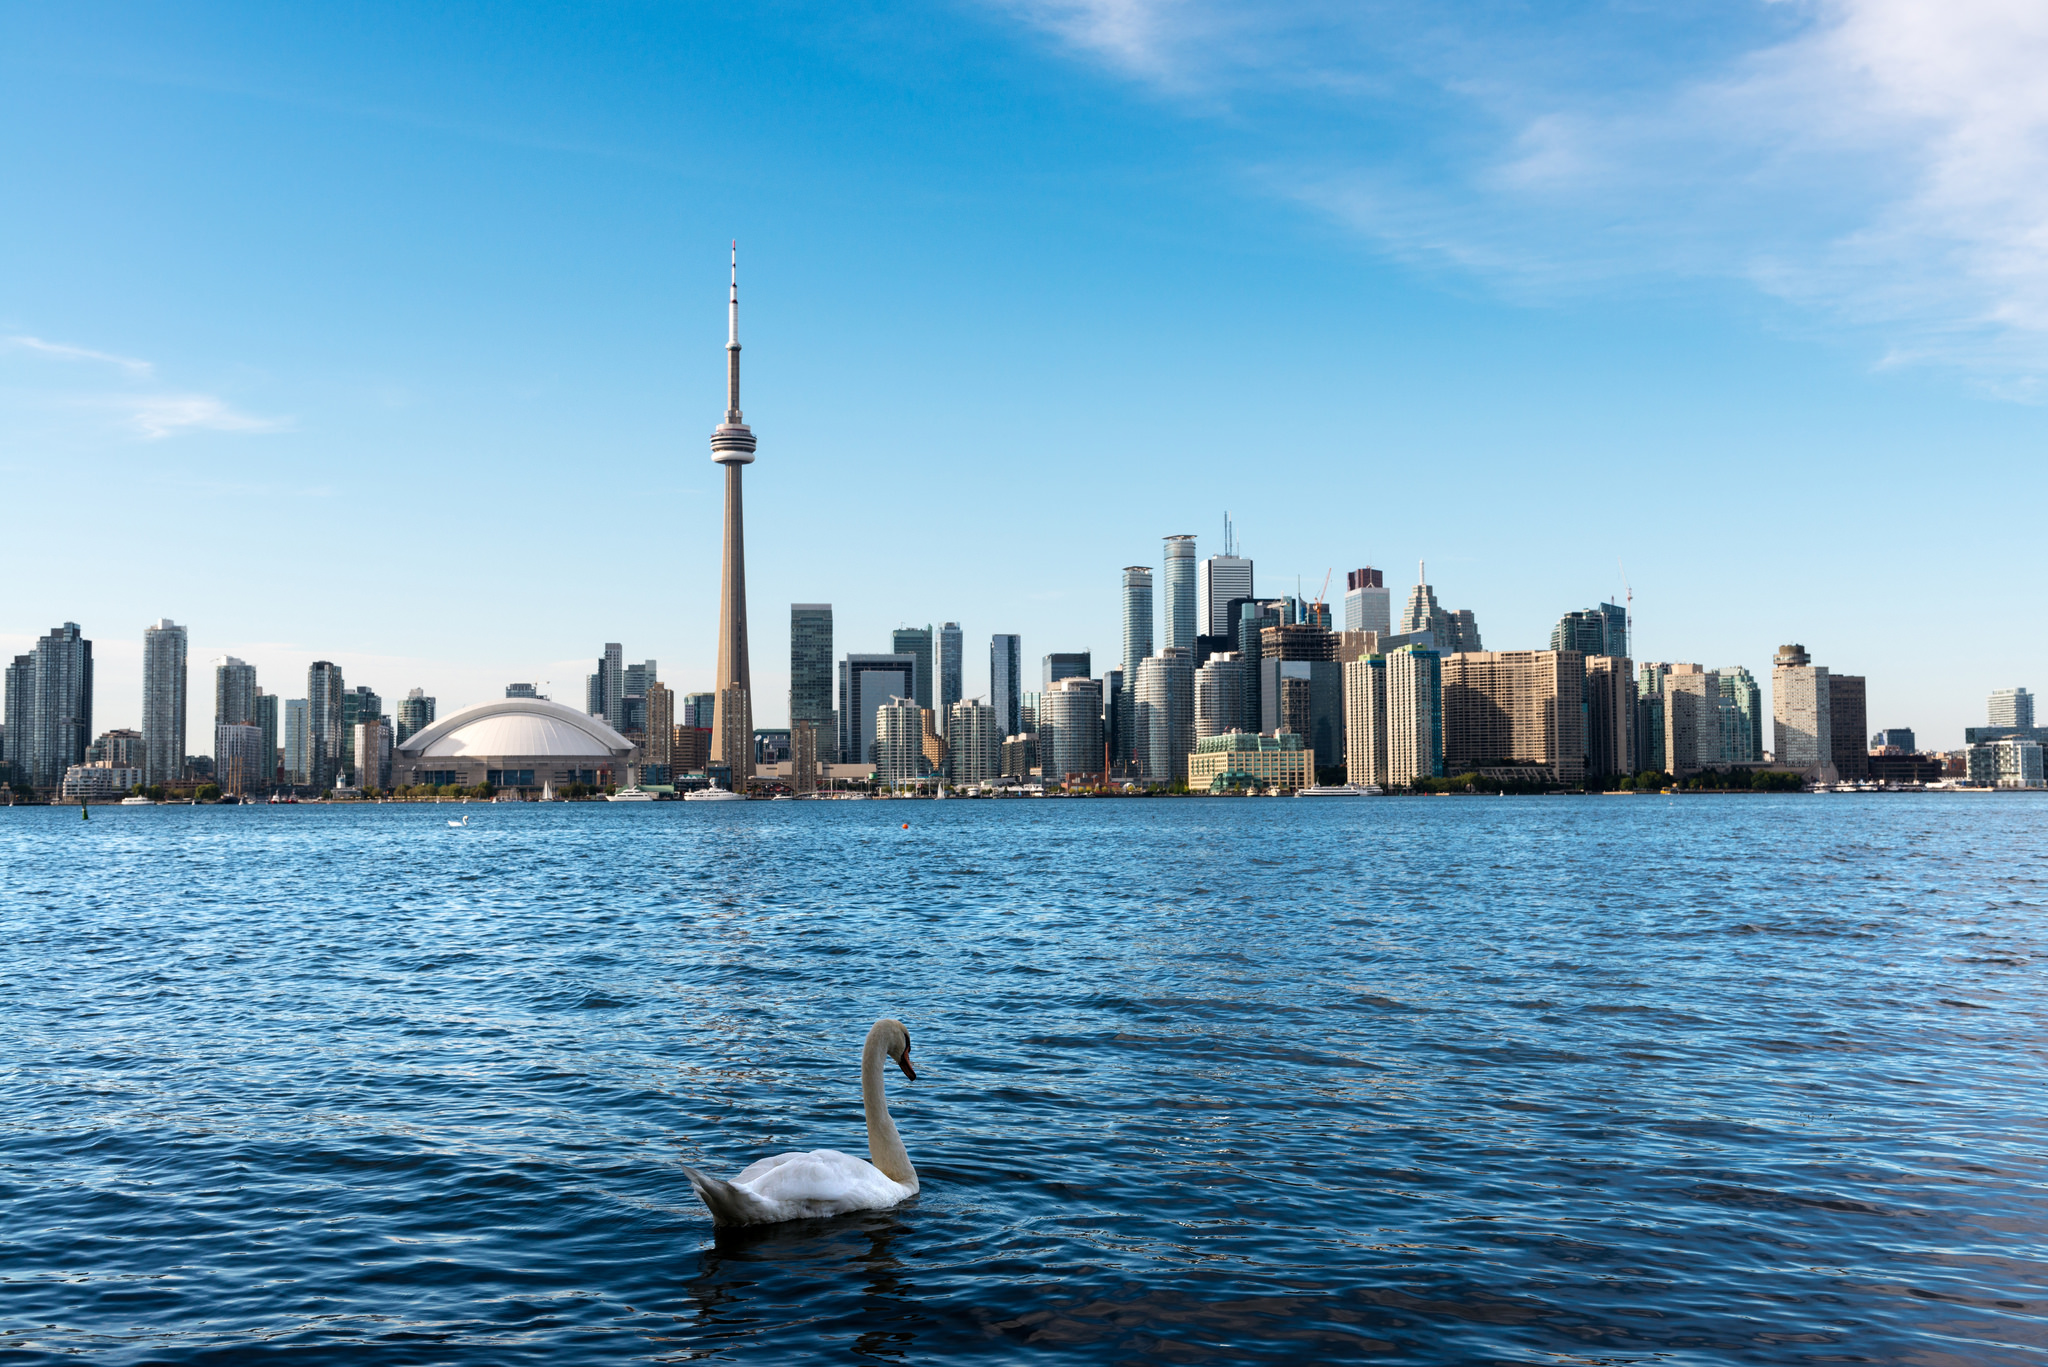 Photo of Toronto Waterfront and Lake Ontario. There is also a beautiful swan on the lake.